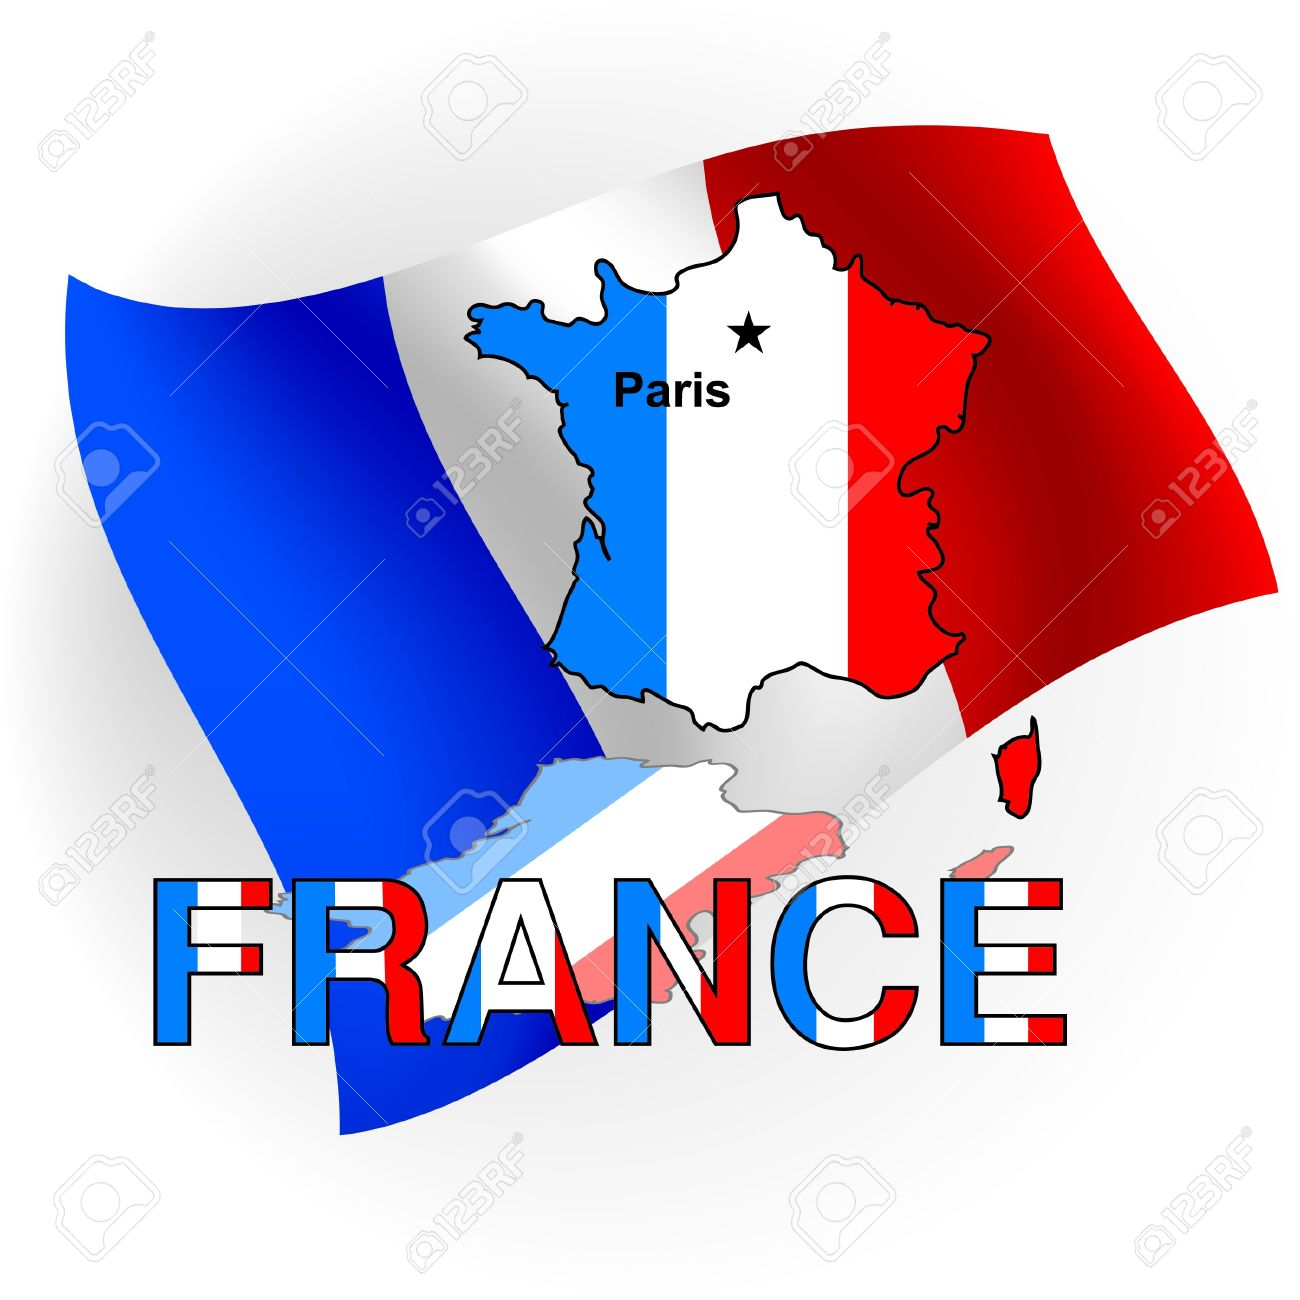 France Map Flag.France Map In The Form Of The French Flag Against A Flag Stock